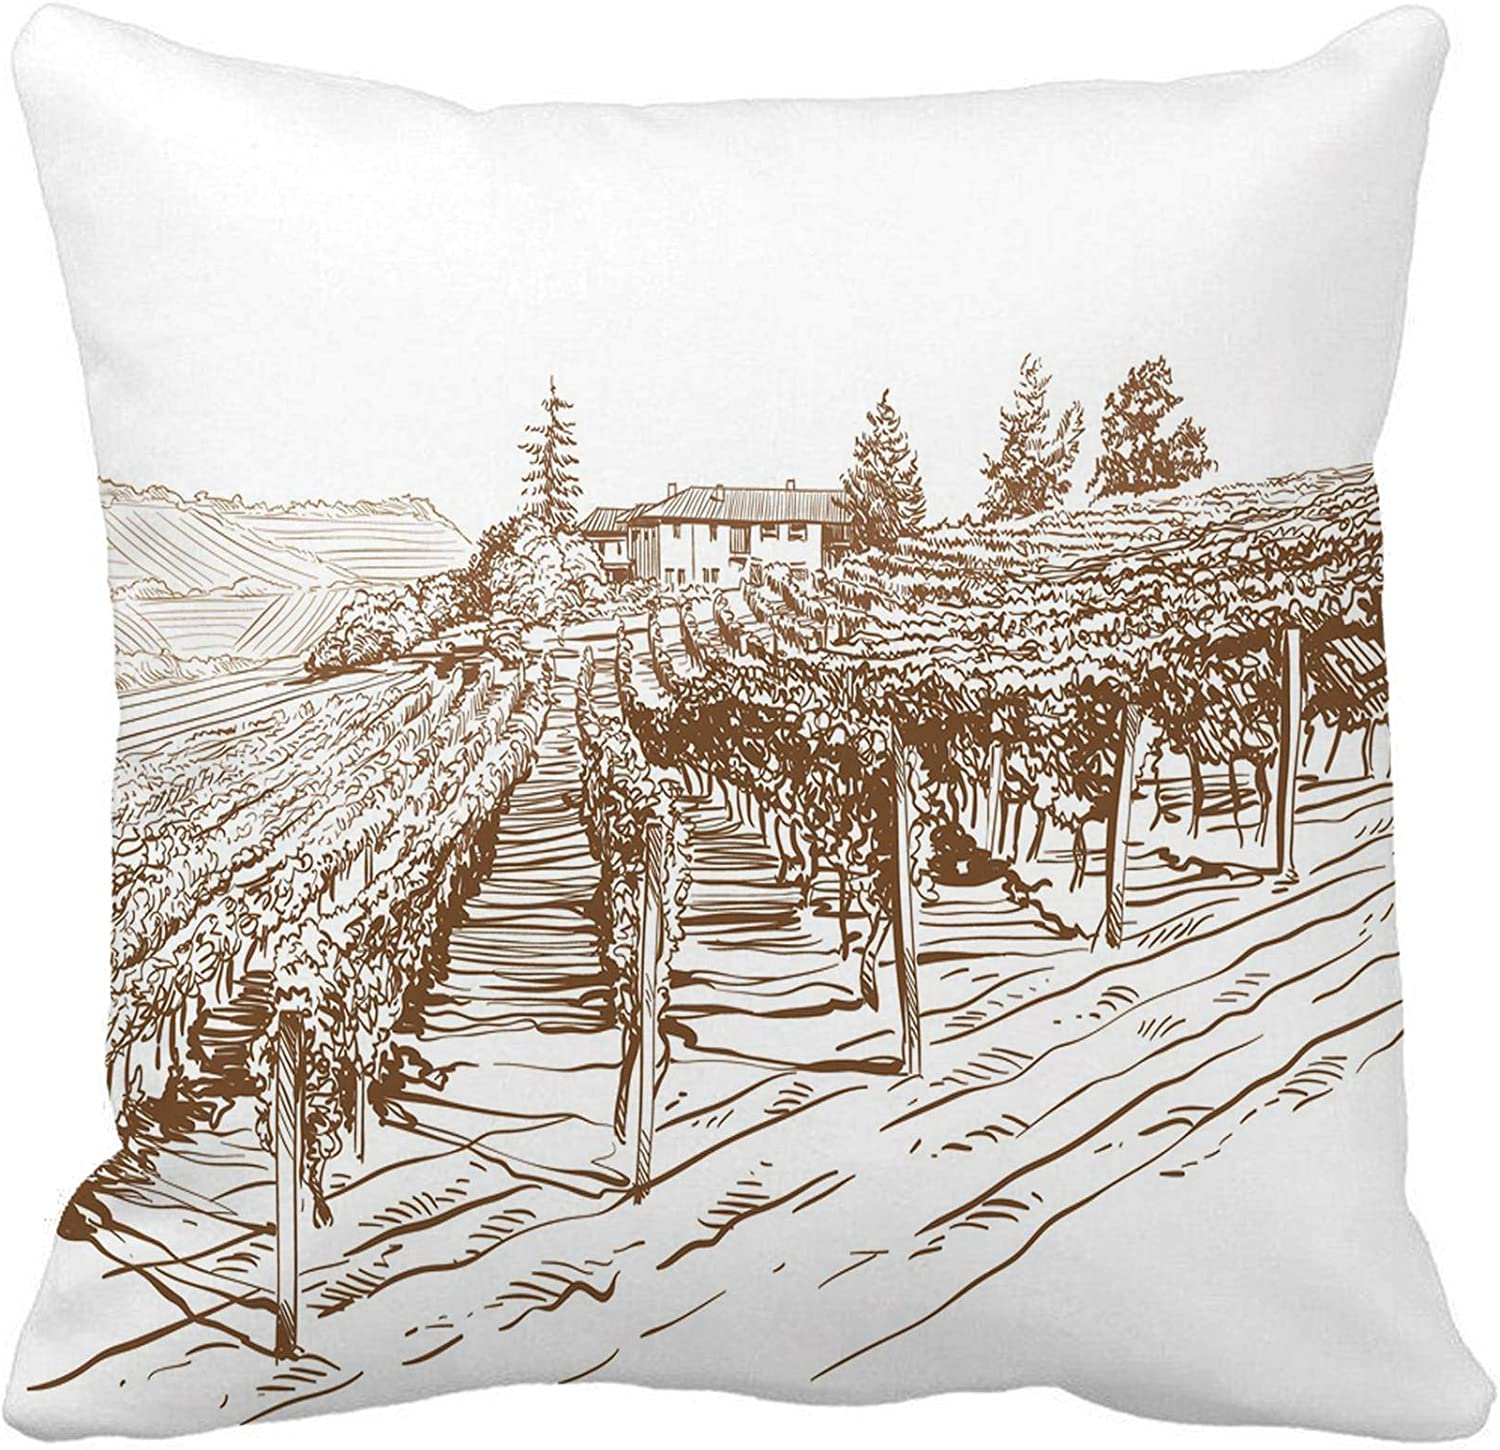 Awowee Throw Pillow Cover Wine Vineyard Landscape Sketch Food France Farm Vintage Italian 20x20 Inches Pillowcase Home Decorative Square Pillow Case Cushion Cover